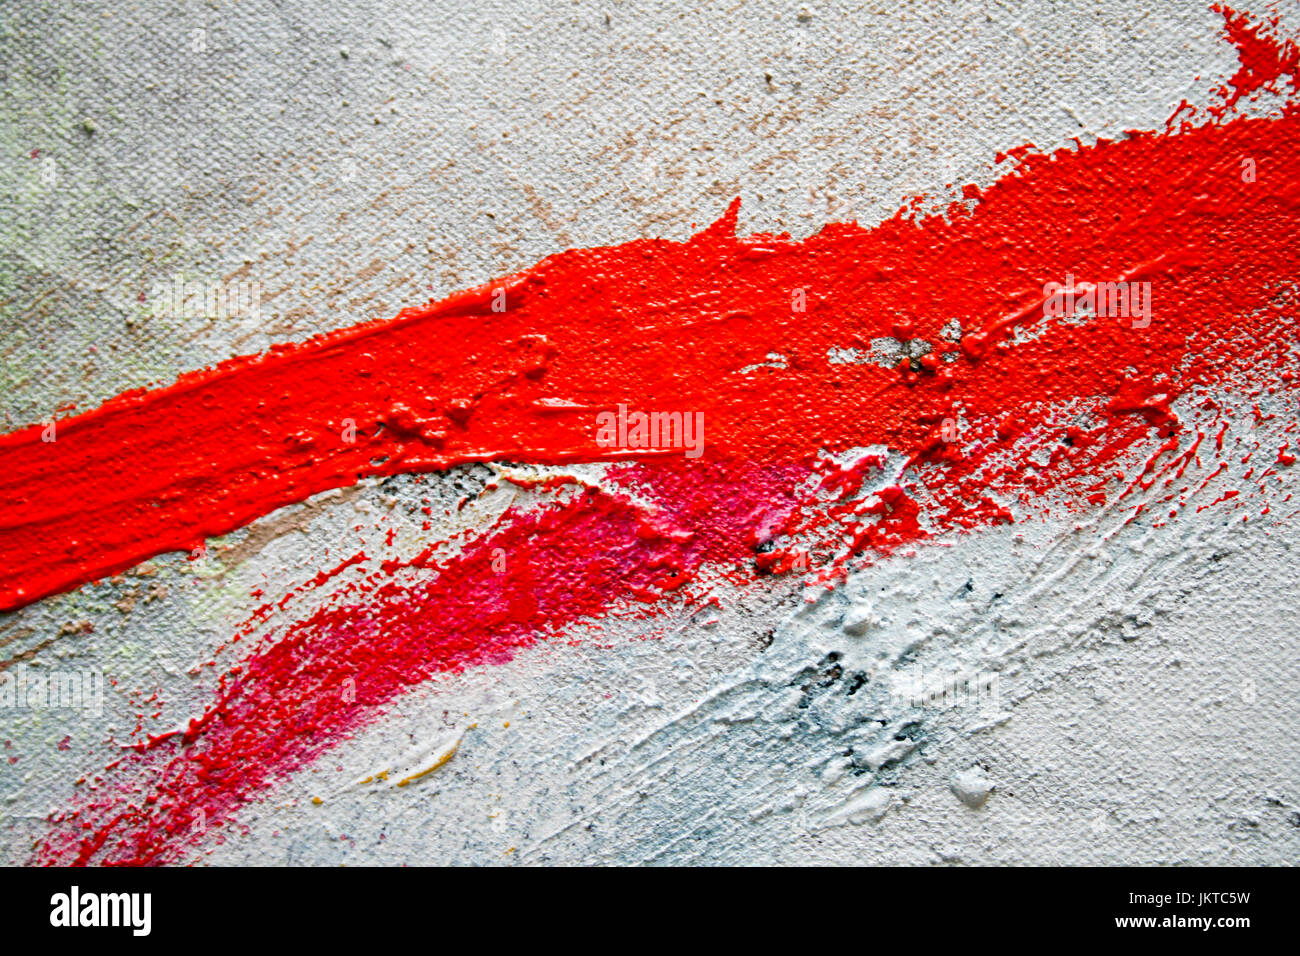 Red Paint Stroke. Photography by Kim Craig. - Stock Image